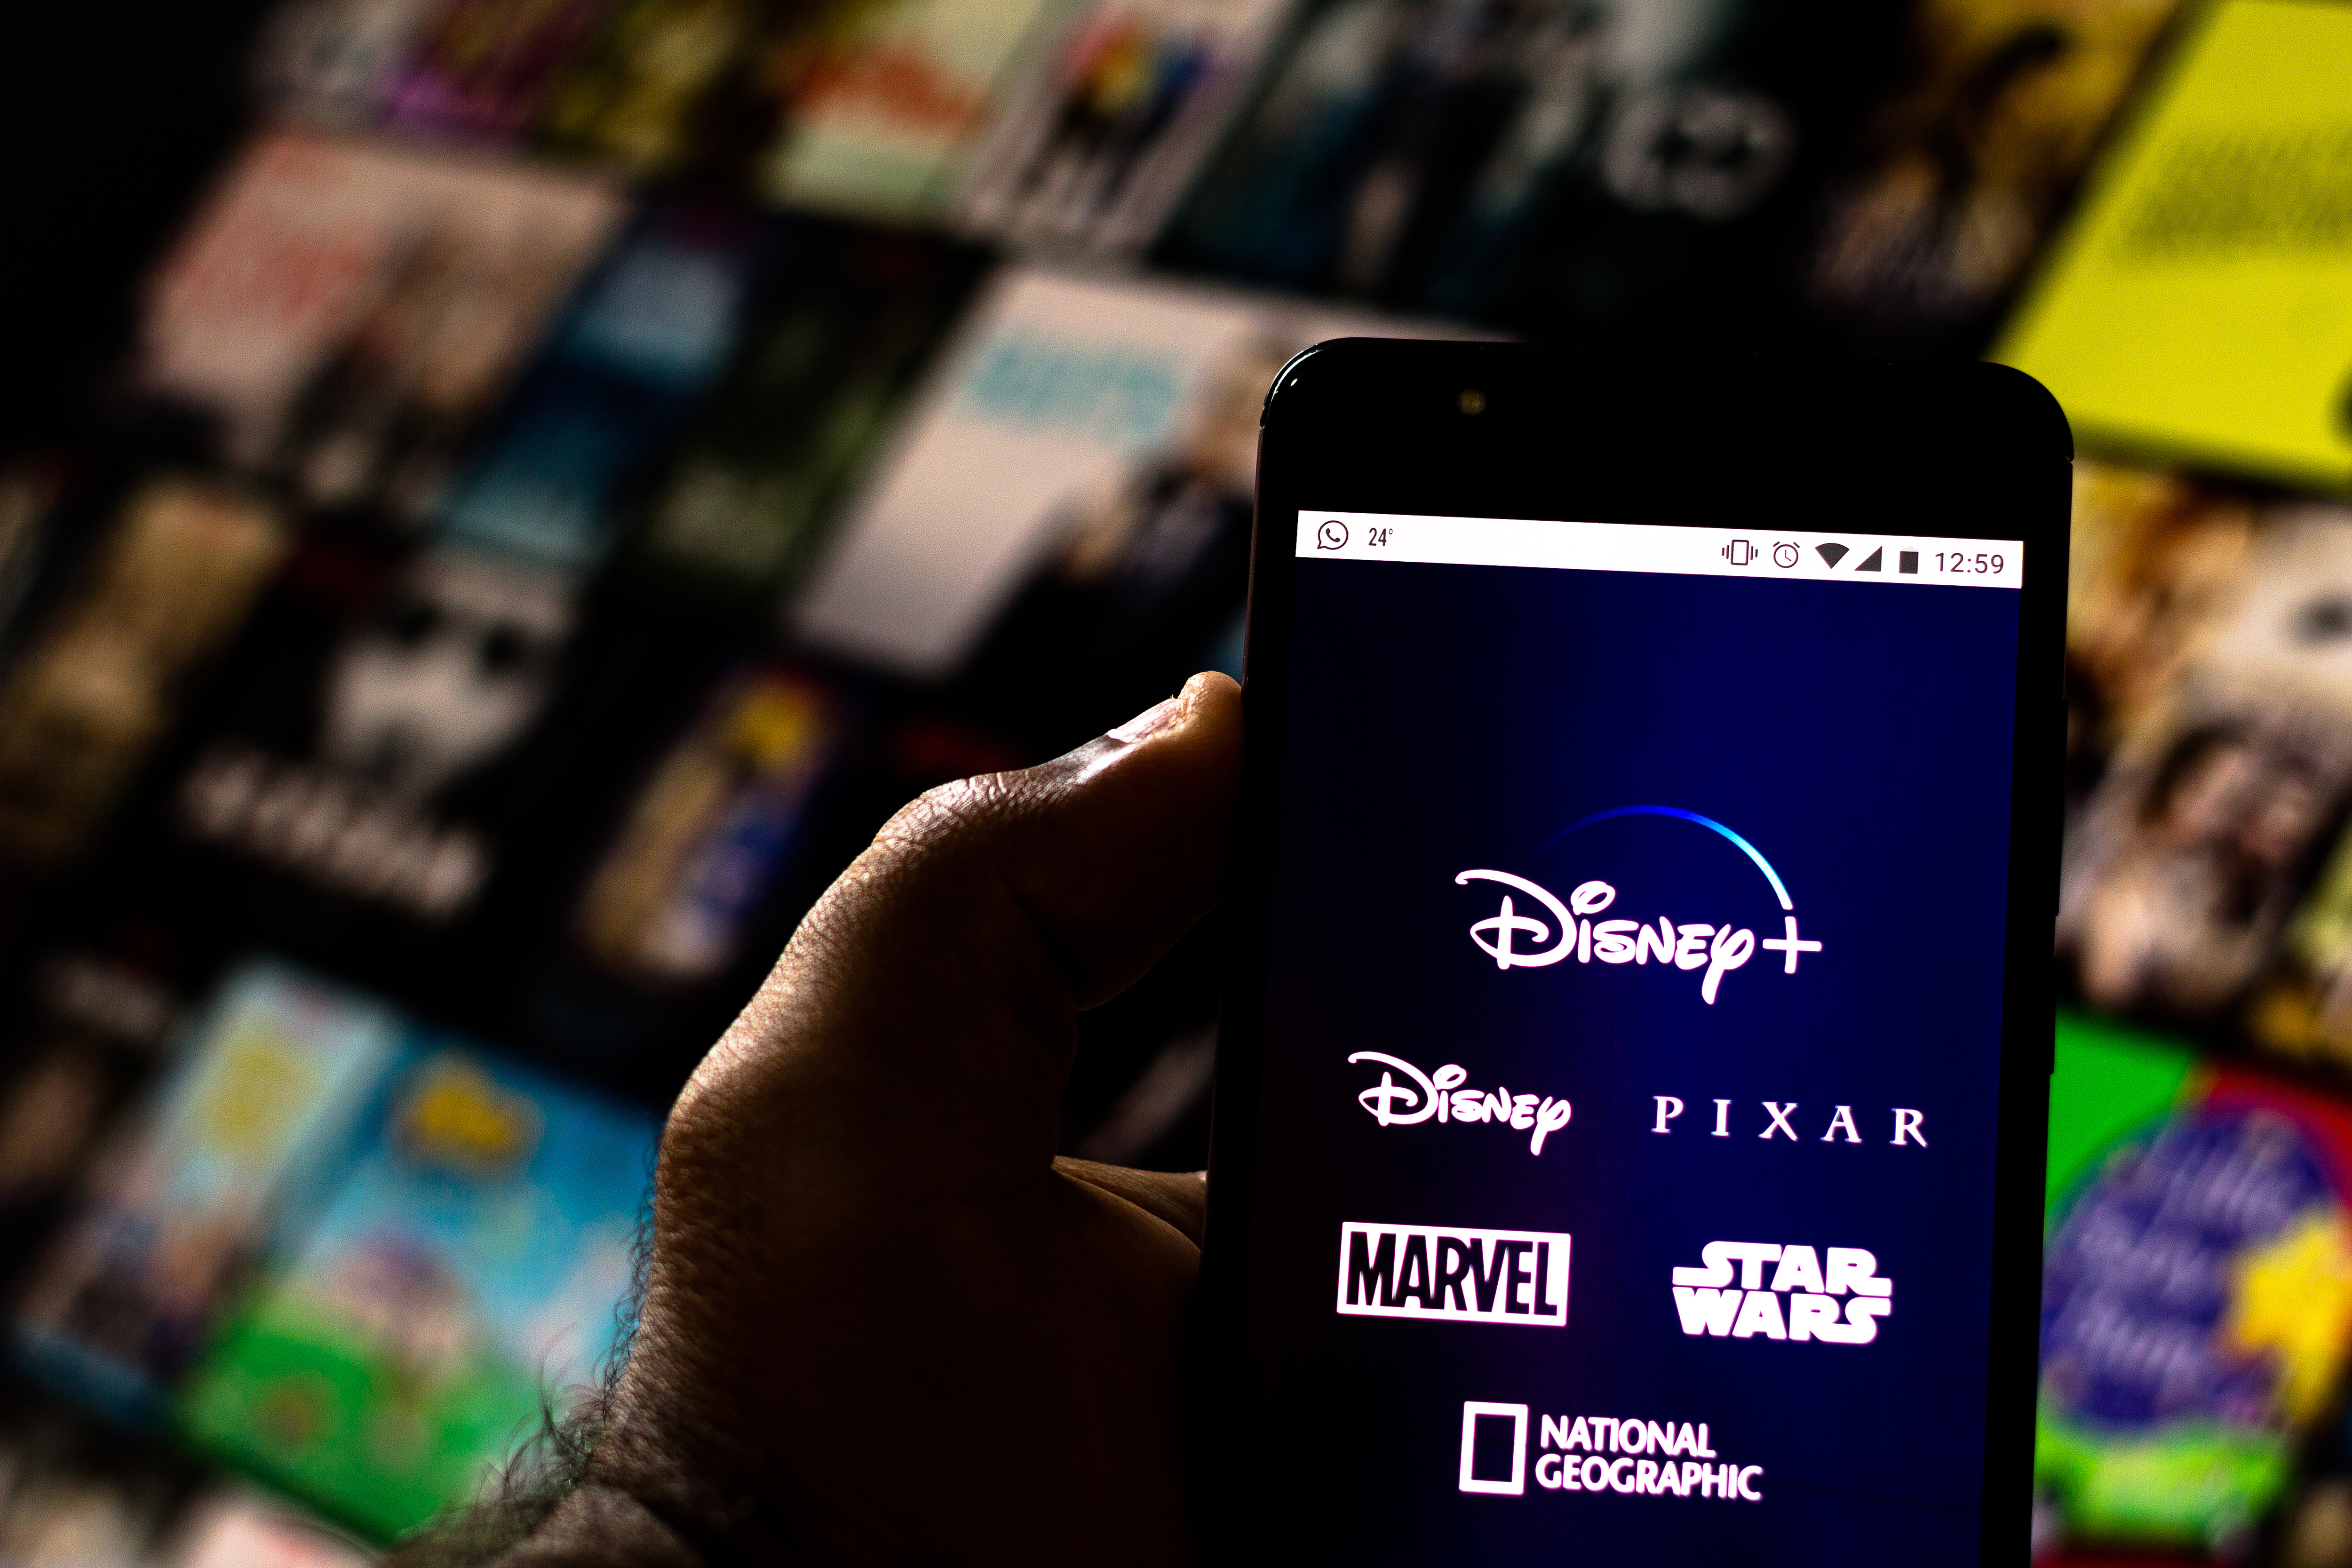 Disney+ will give some users a free trial before the official launch.